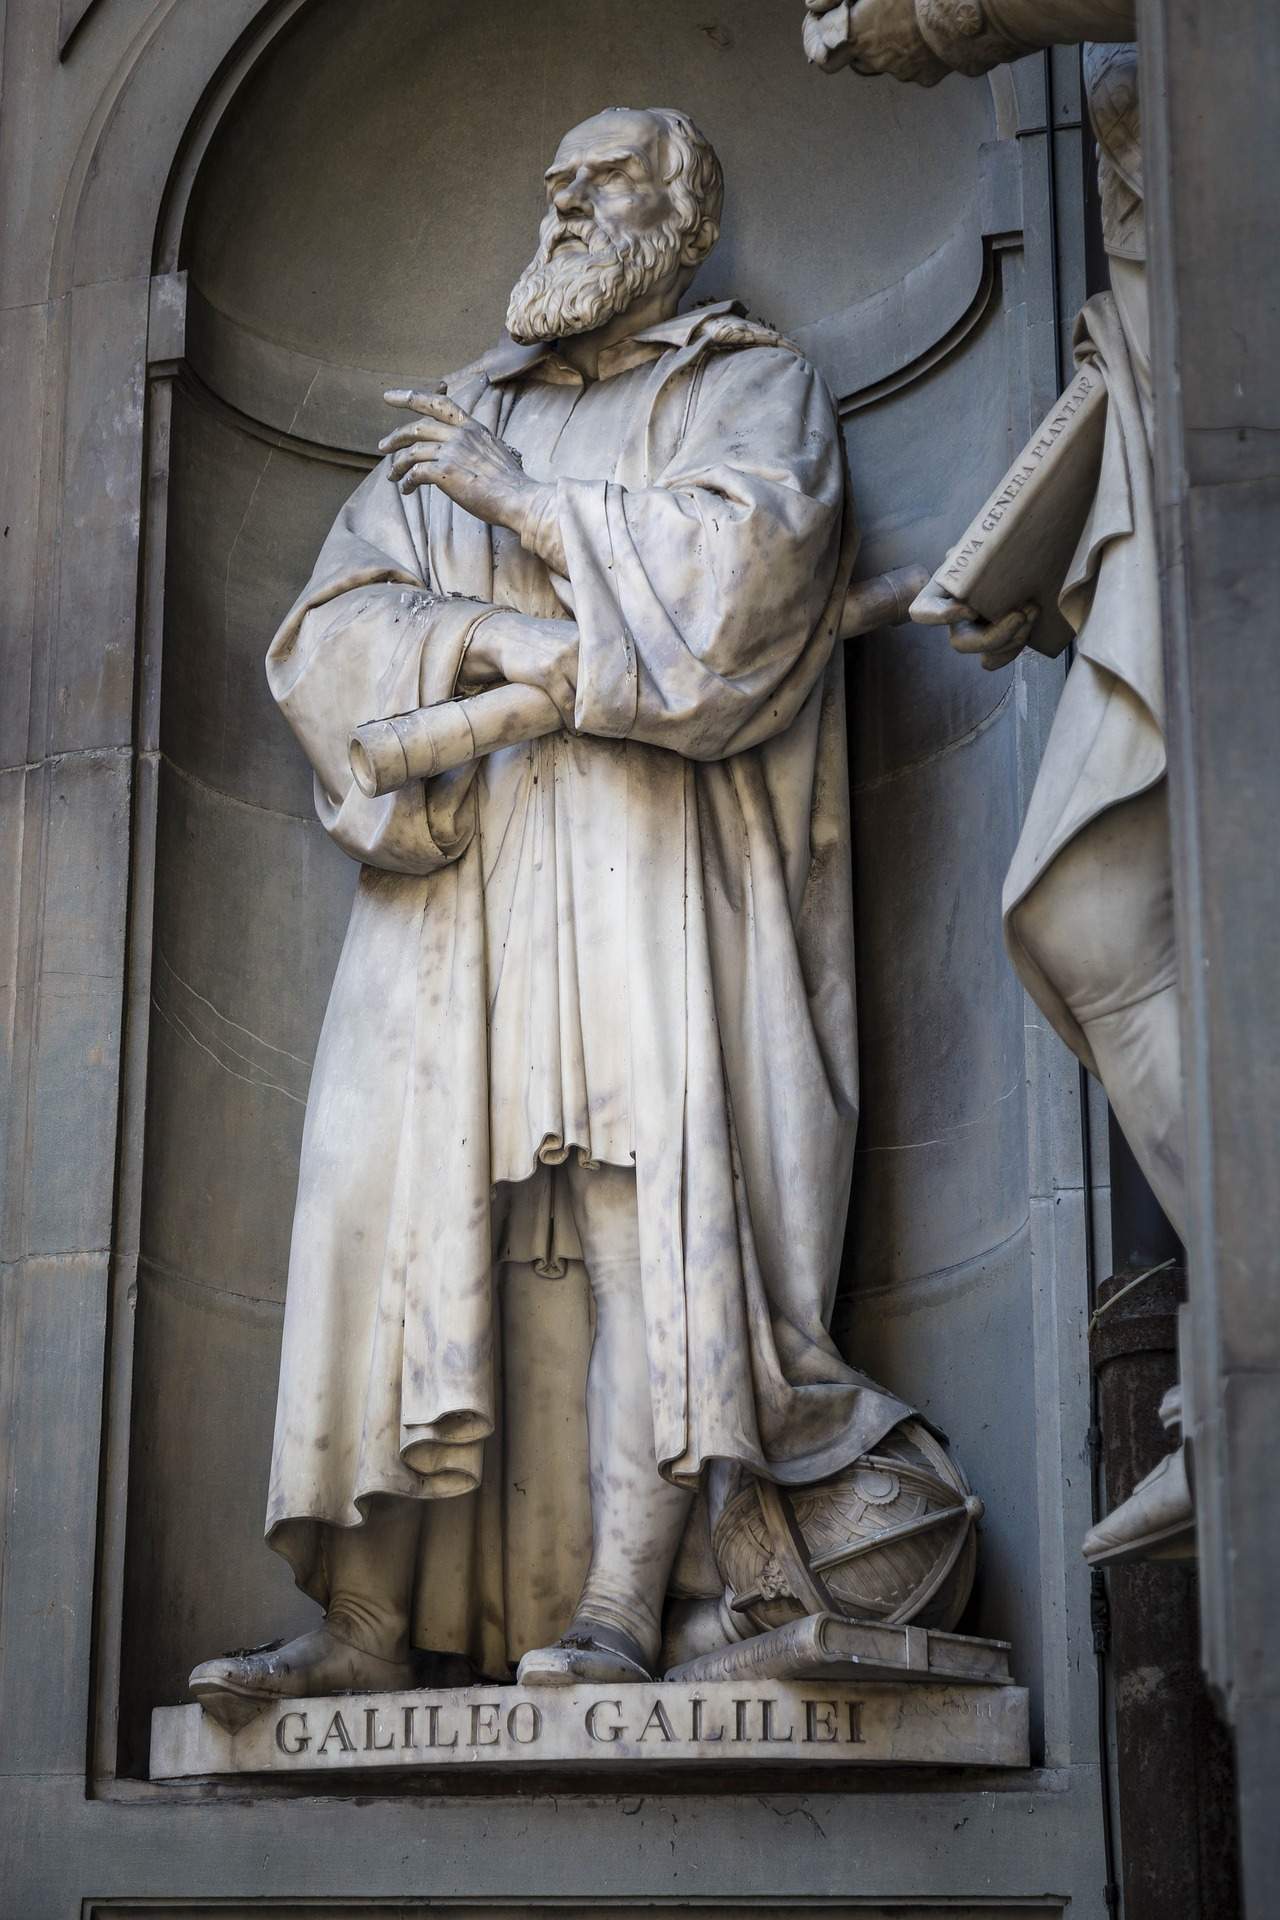 Statue of Galileo outside the Iffizi Gallery in Florence, Italy.